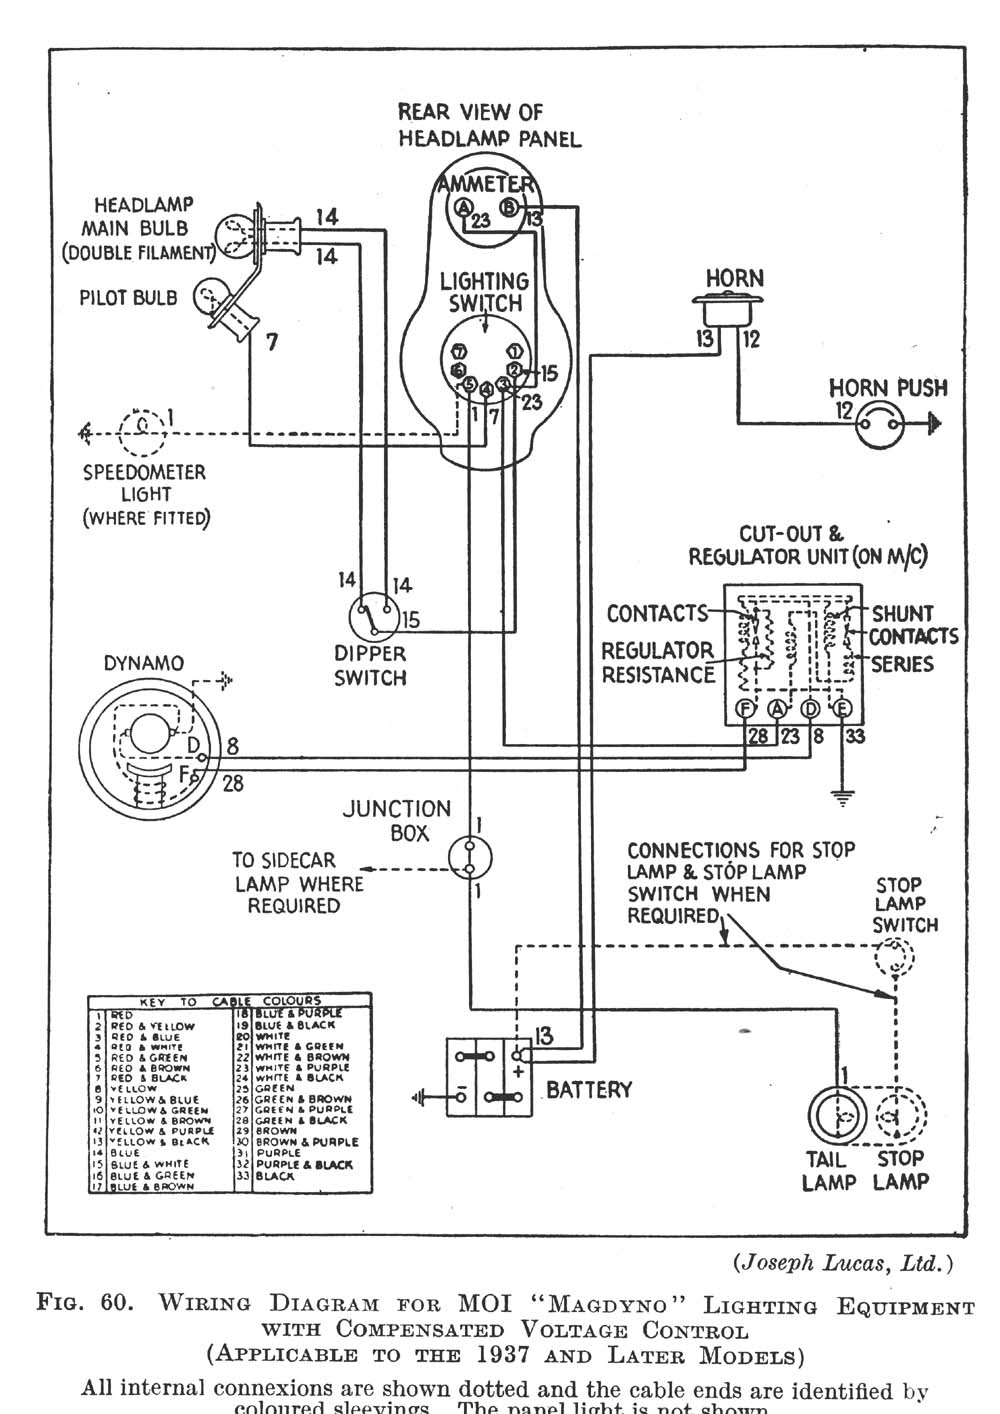 2JZ GTE 20VVTi 20JZS161 20Aristo 20Engine 20Wiring additionally H ton Bay Fan Switch Wiring Diagram moreover Wiring Diagram For Indicators furthermore SPC BRD H tonBay Help as well Pedestal Fan Capacitor Wiring Diagram. on ceiling fan wiring diagram reverse switch